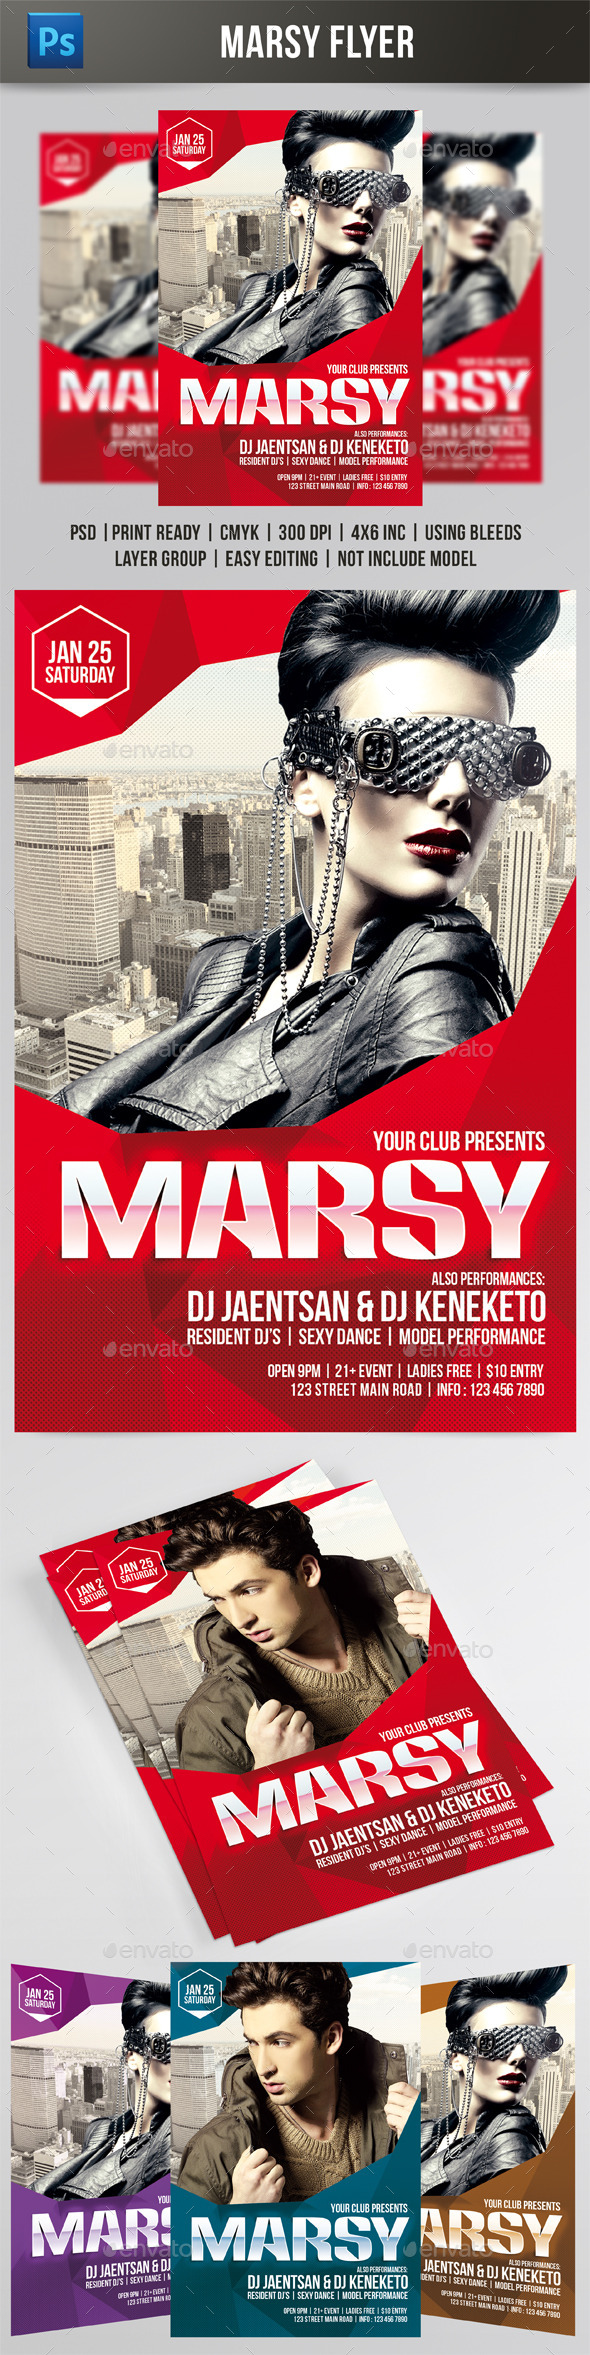 GraphicRiver Marsy Flyer 9723458